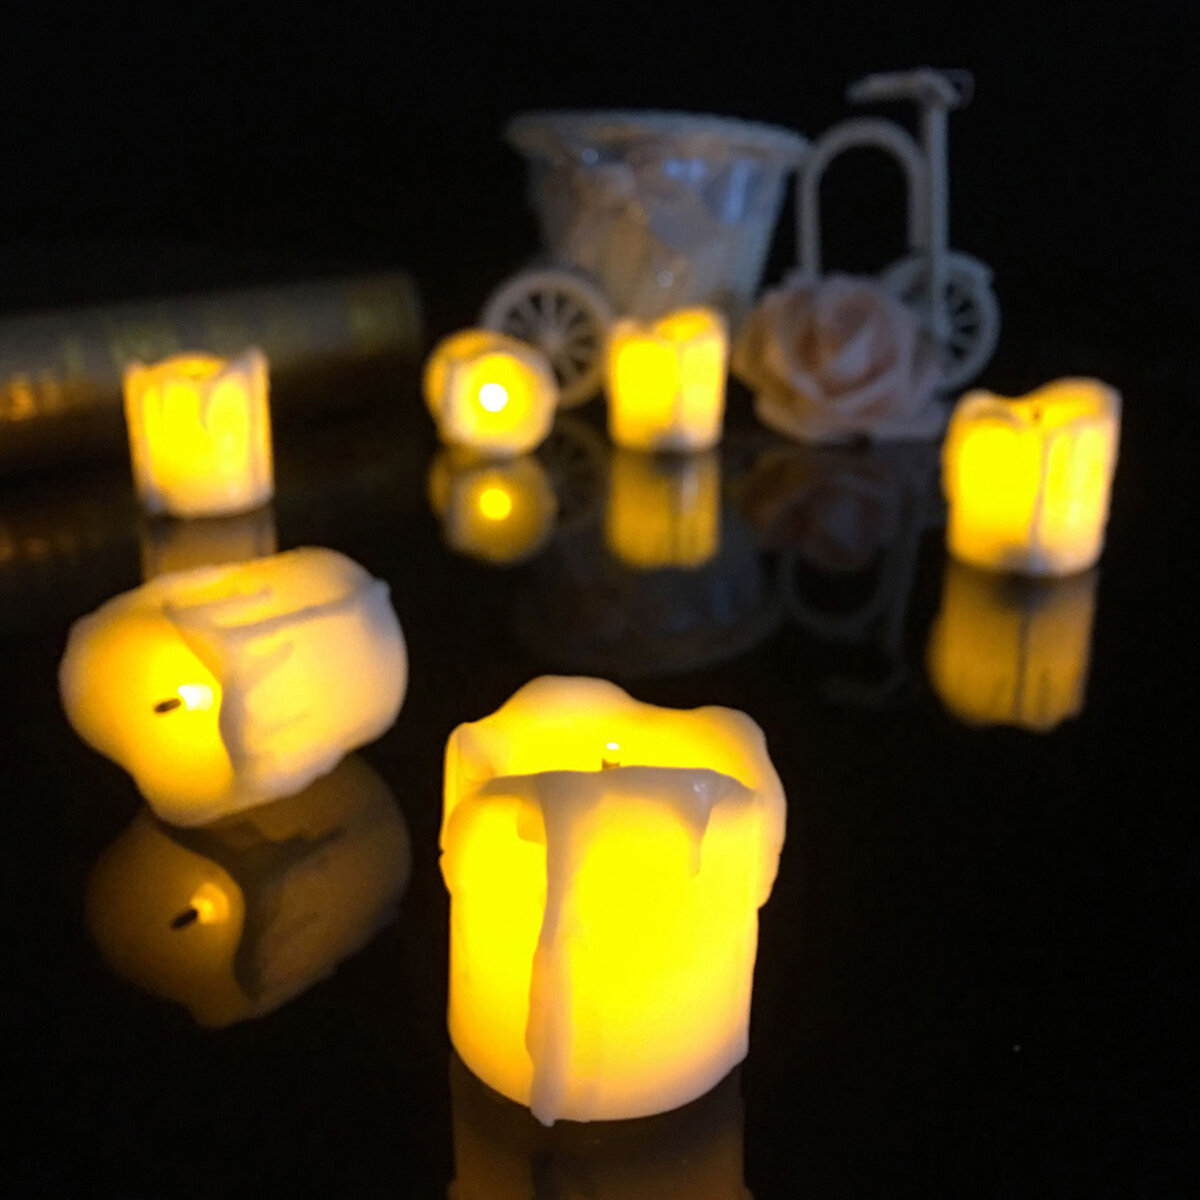 4345cm battery powered flameless led table lamp candle night light halloween christmas decoration - Christmas Decorations Battery Operated Candles